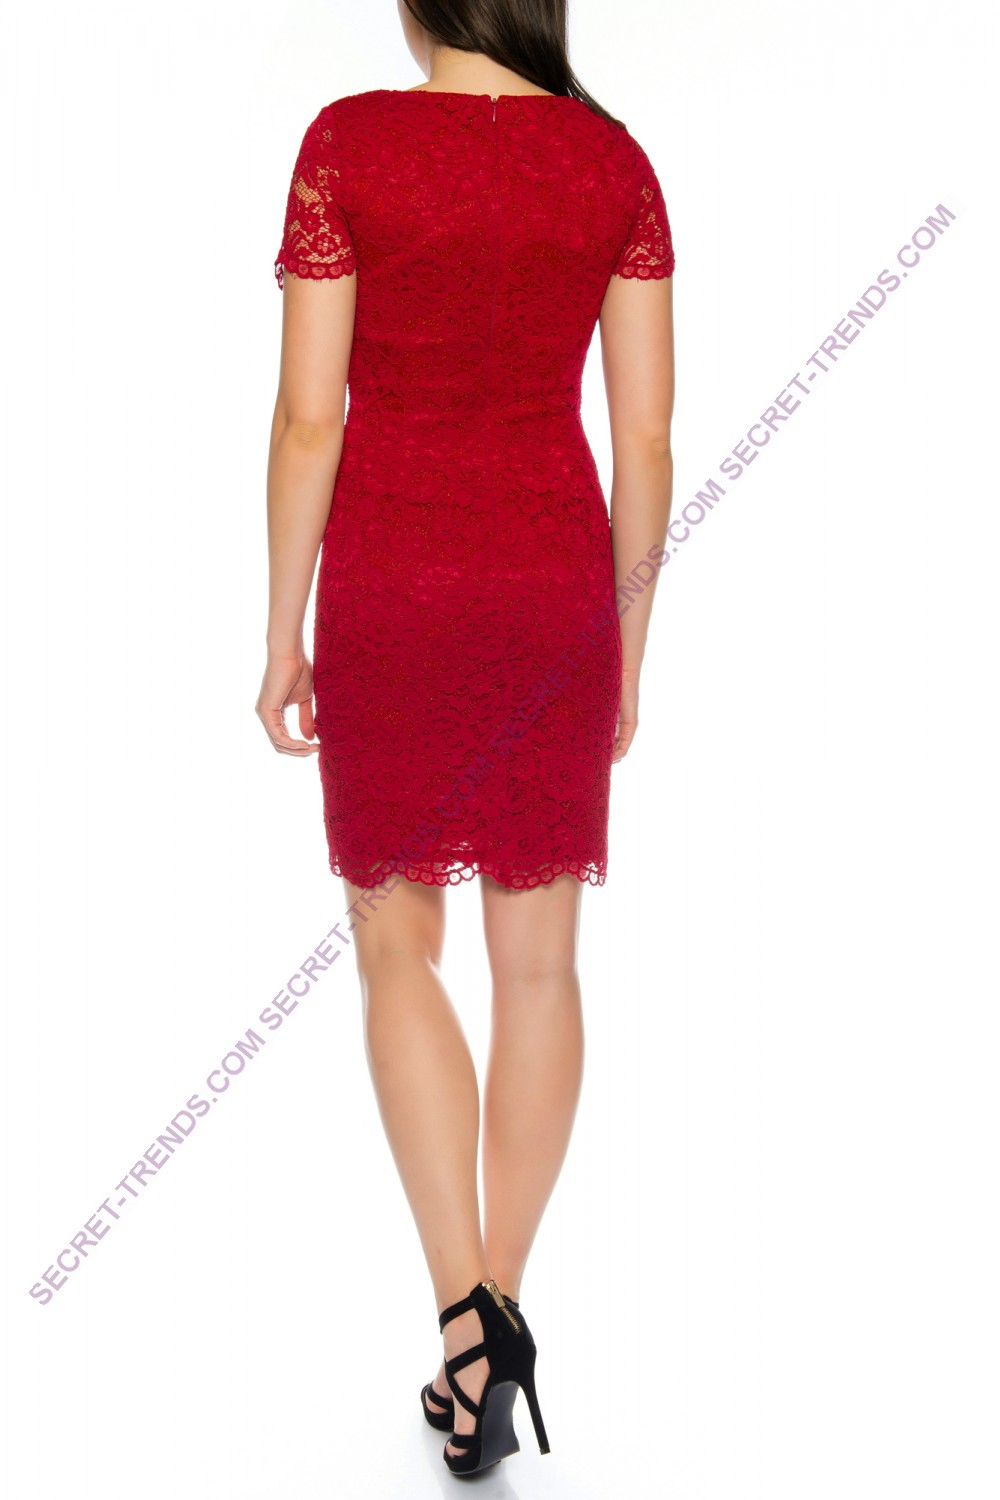 Elegant cocktail dress half-bodied of fine floral lace and decorated ...